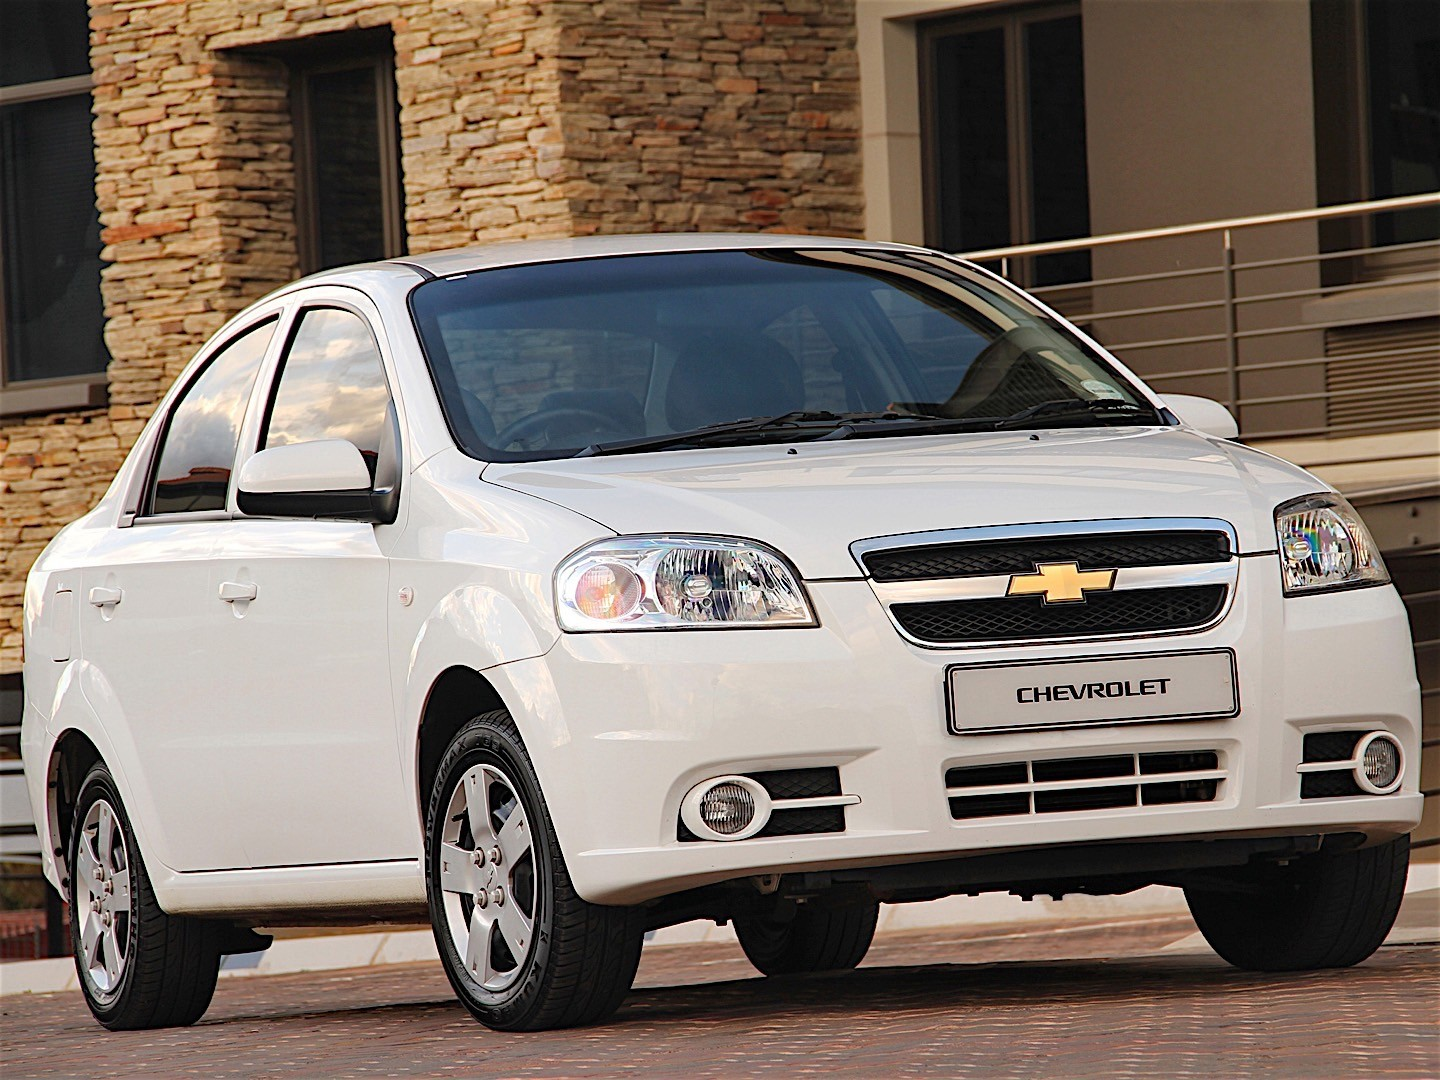 European Auto House >> CHEVROLET Aveo/Kalos Sedan specs & photos - 2005, 2006 ...